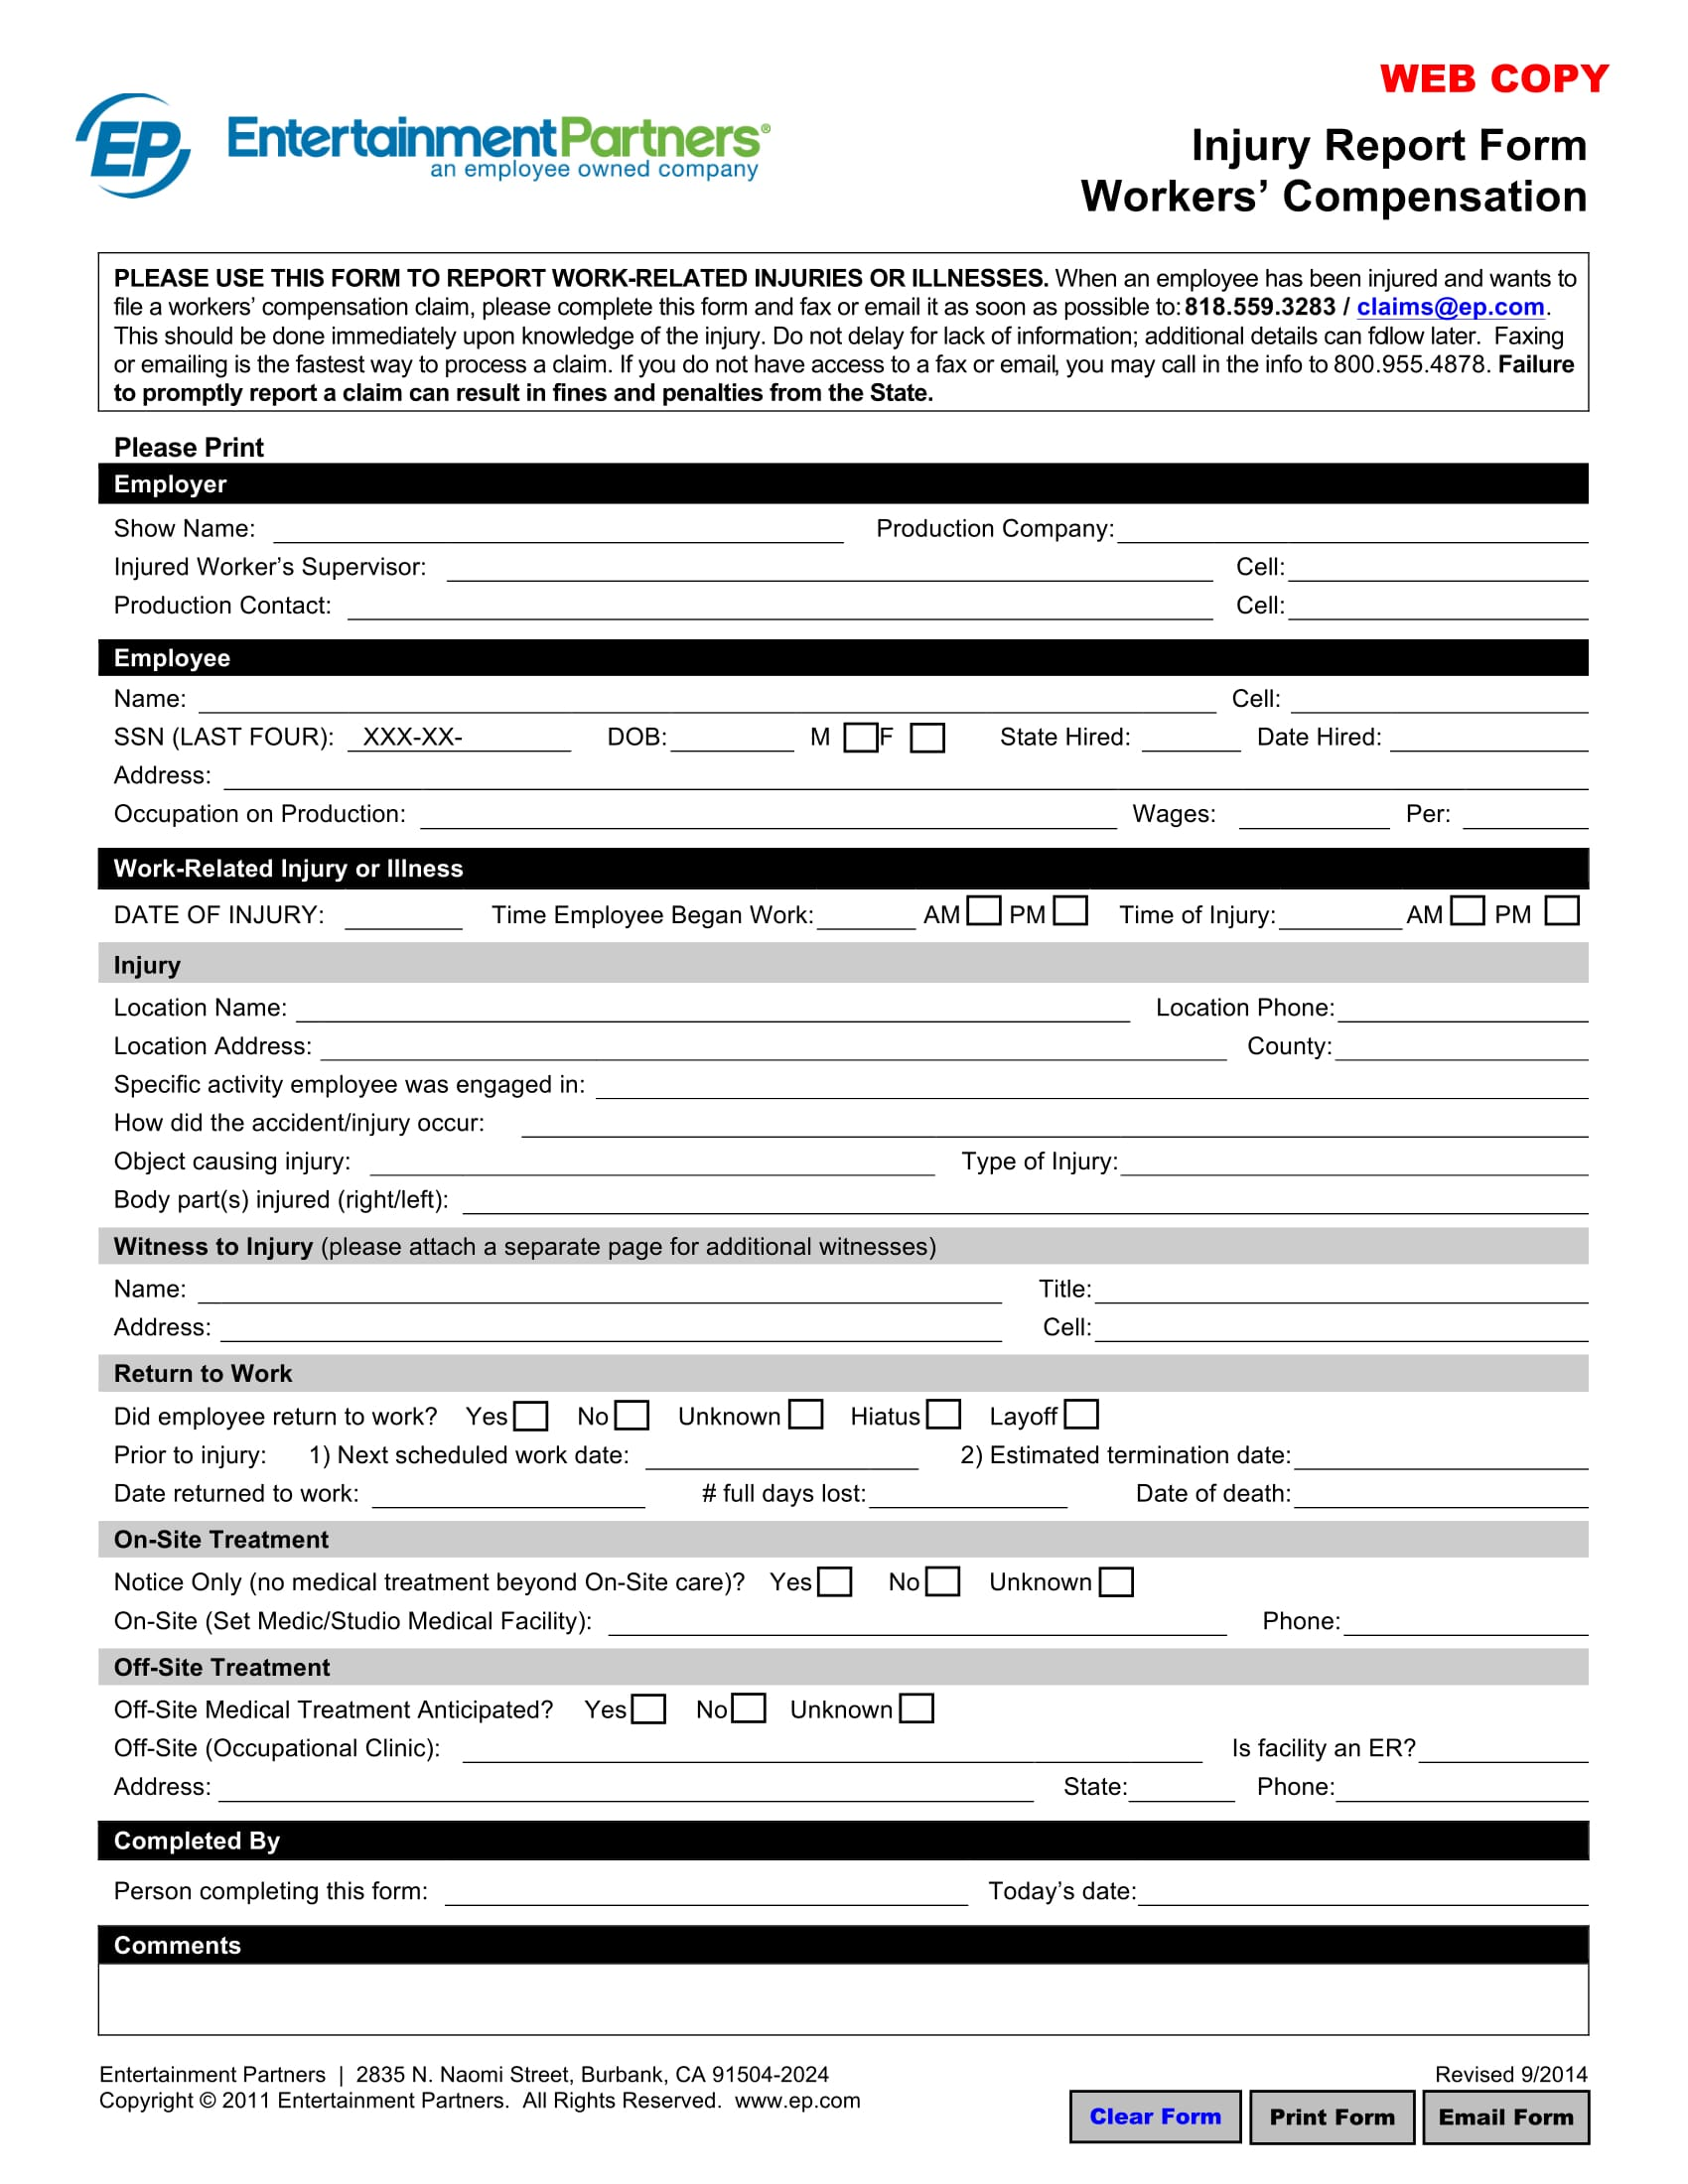 injury report form – worker's compensation 1